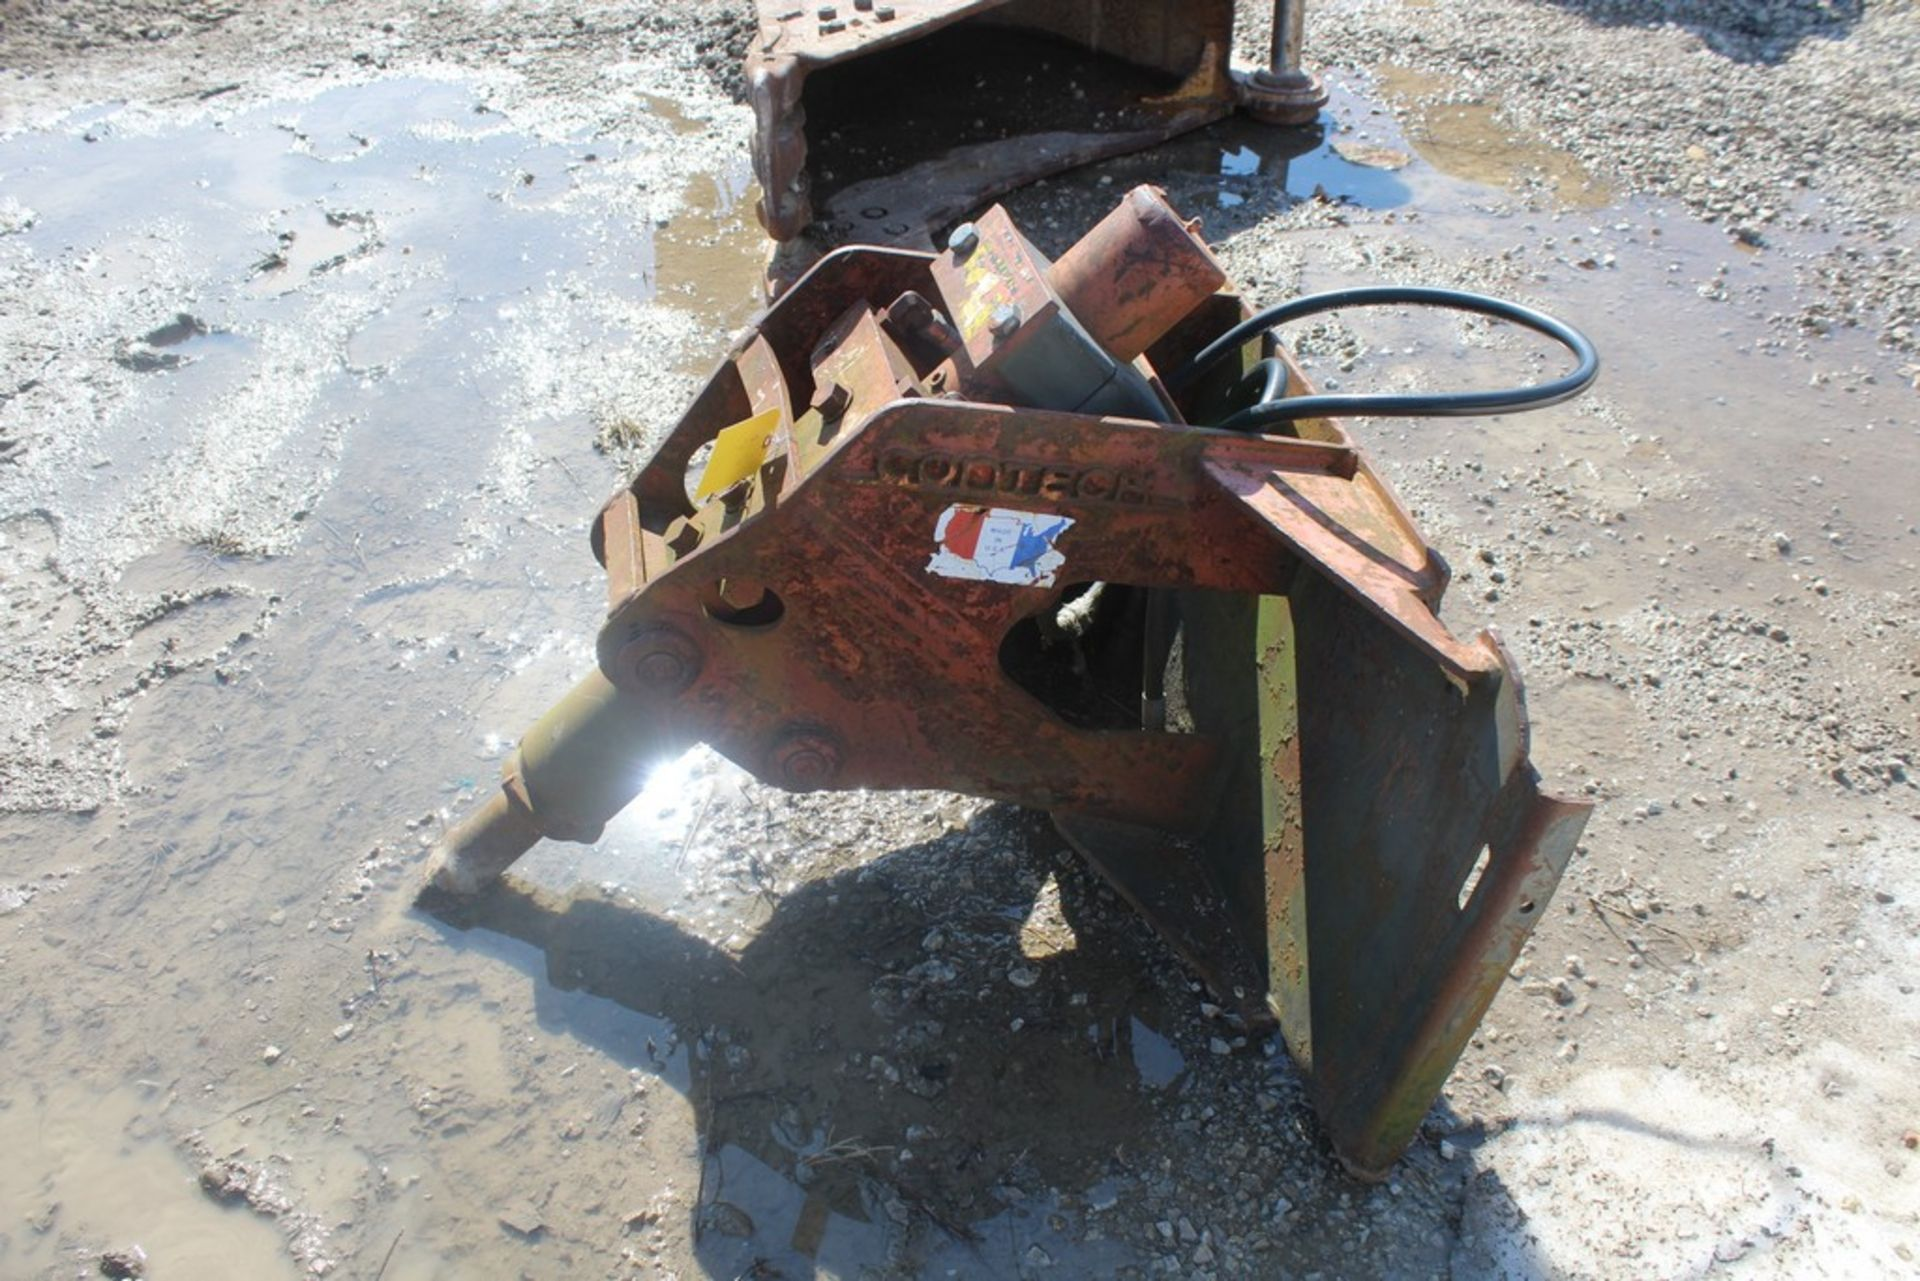 CONTECH H-220 HYDRAULIC BREAKER ATTACHMENT S/N: 86010, BIT, TO FIT SKID STEER LOADER - Image 3 of 4